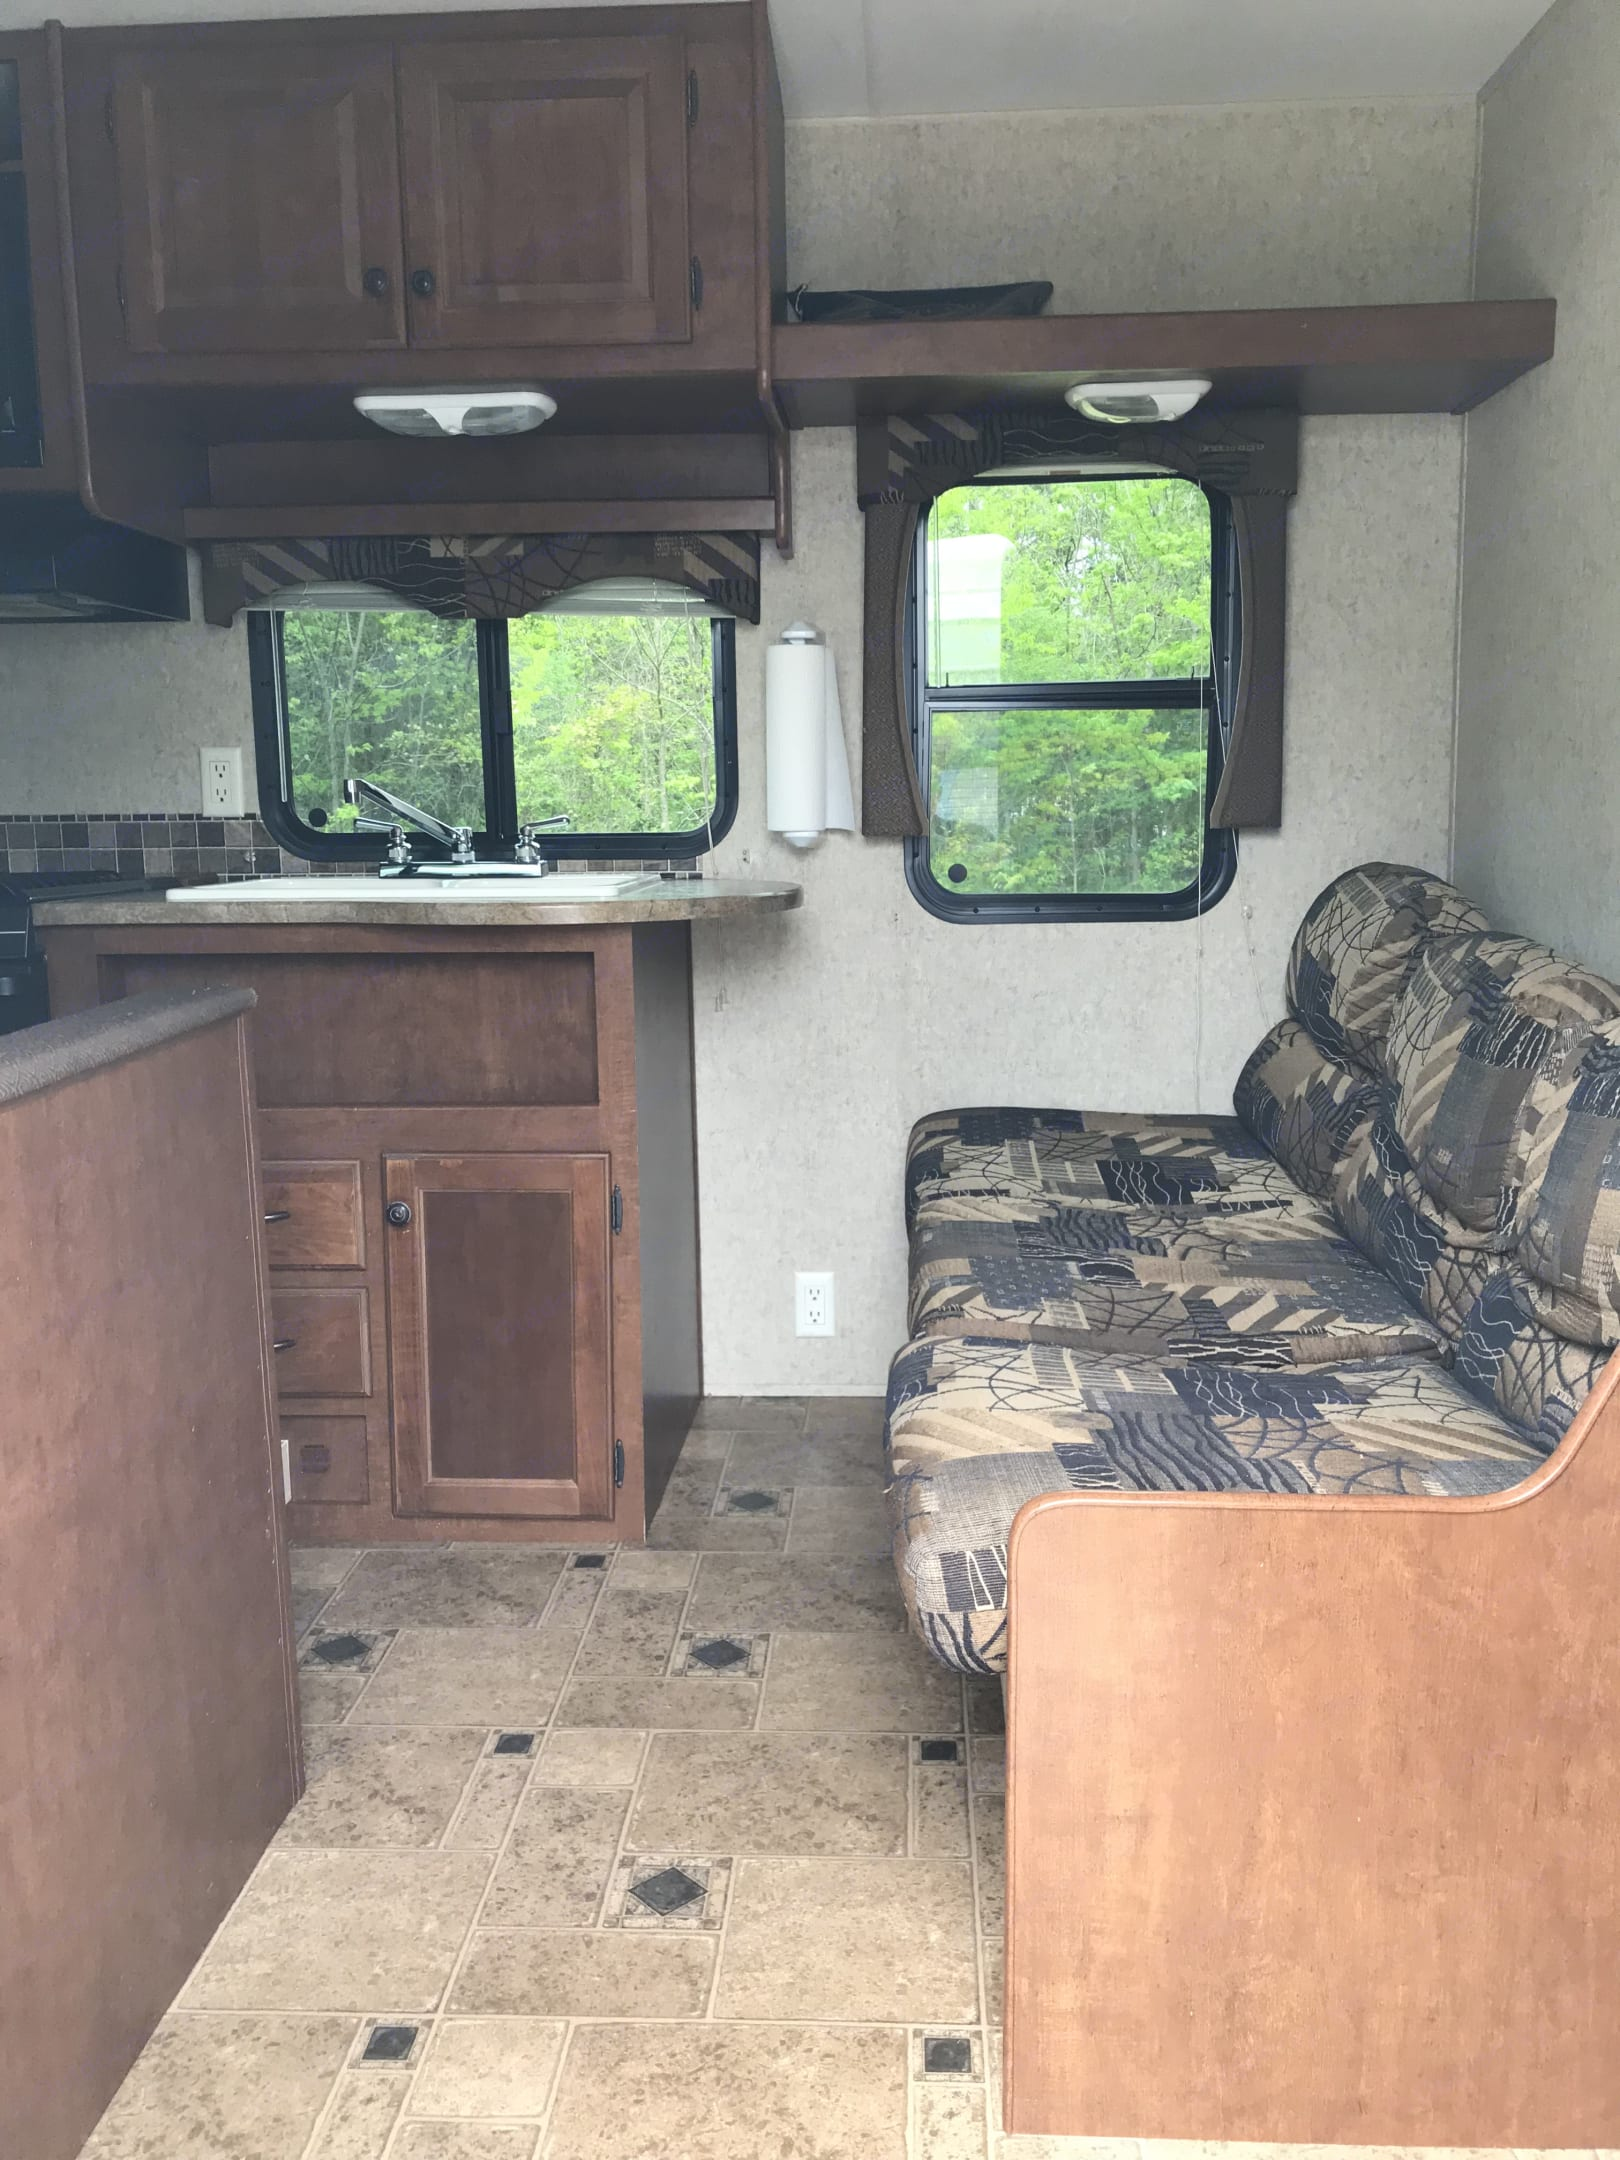 Nice sofa facing the TV. We have fit up to 4 adults on the couch.. Heartland Prowler 2012